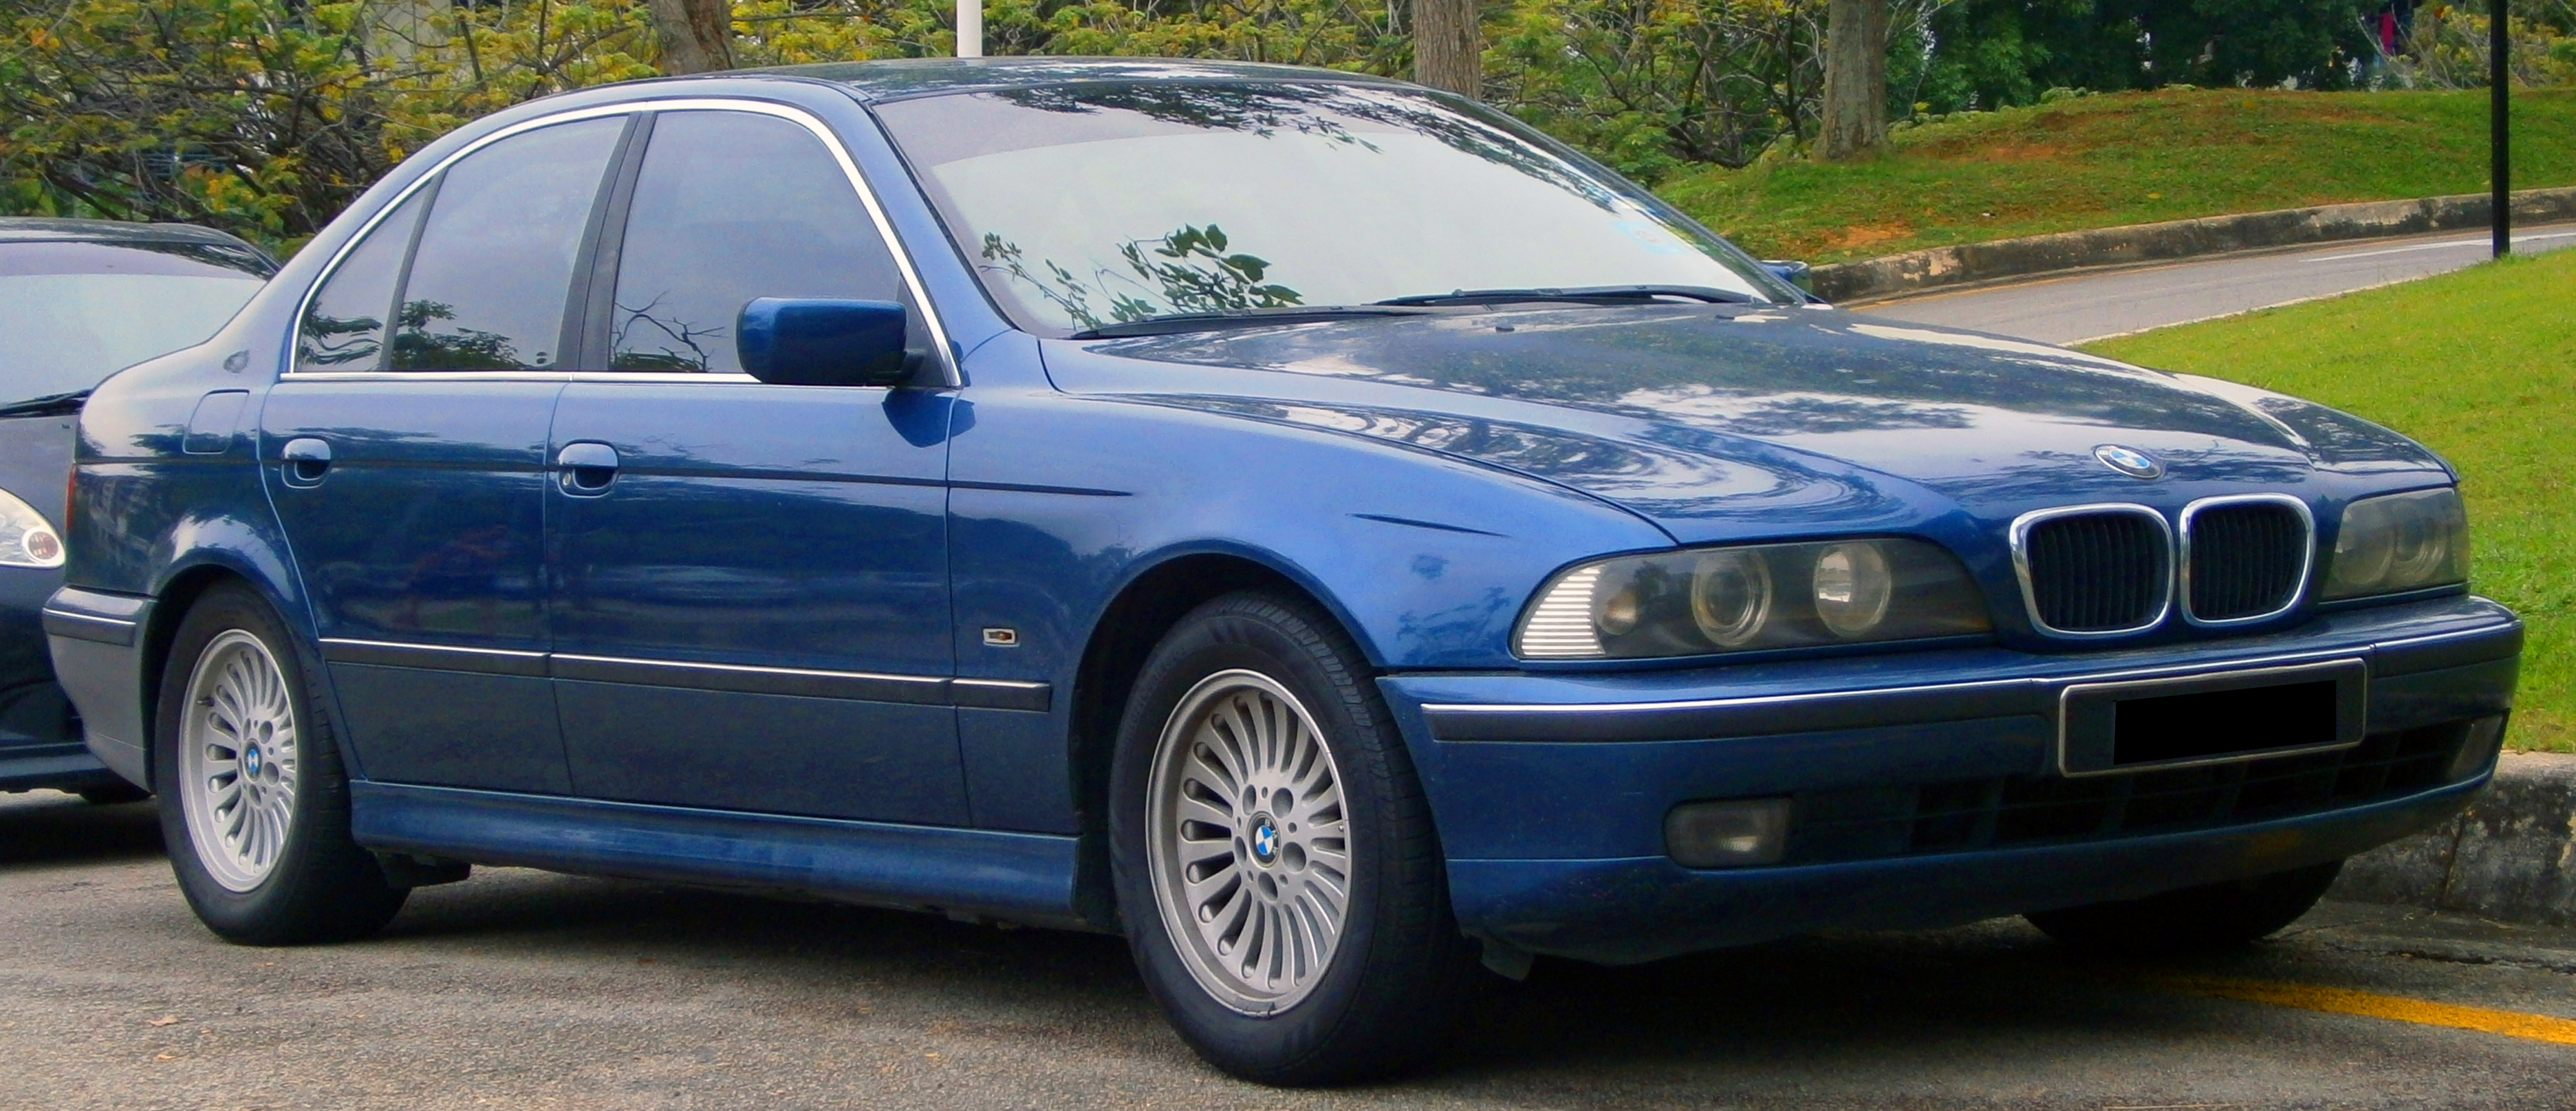 BMW 5 series 523i 1999 photo - 2